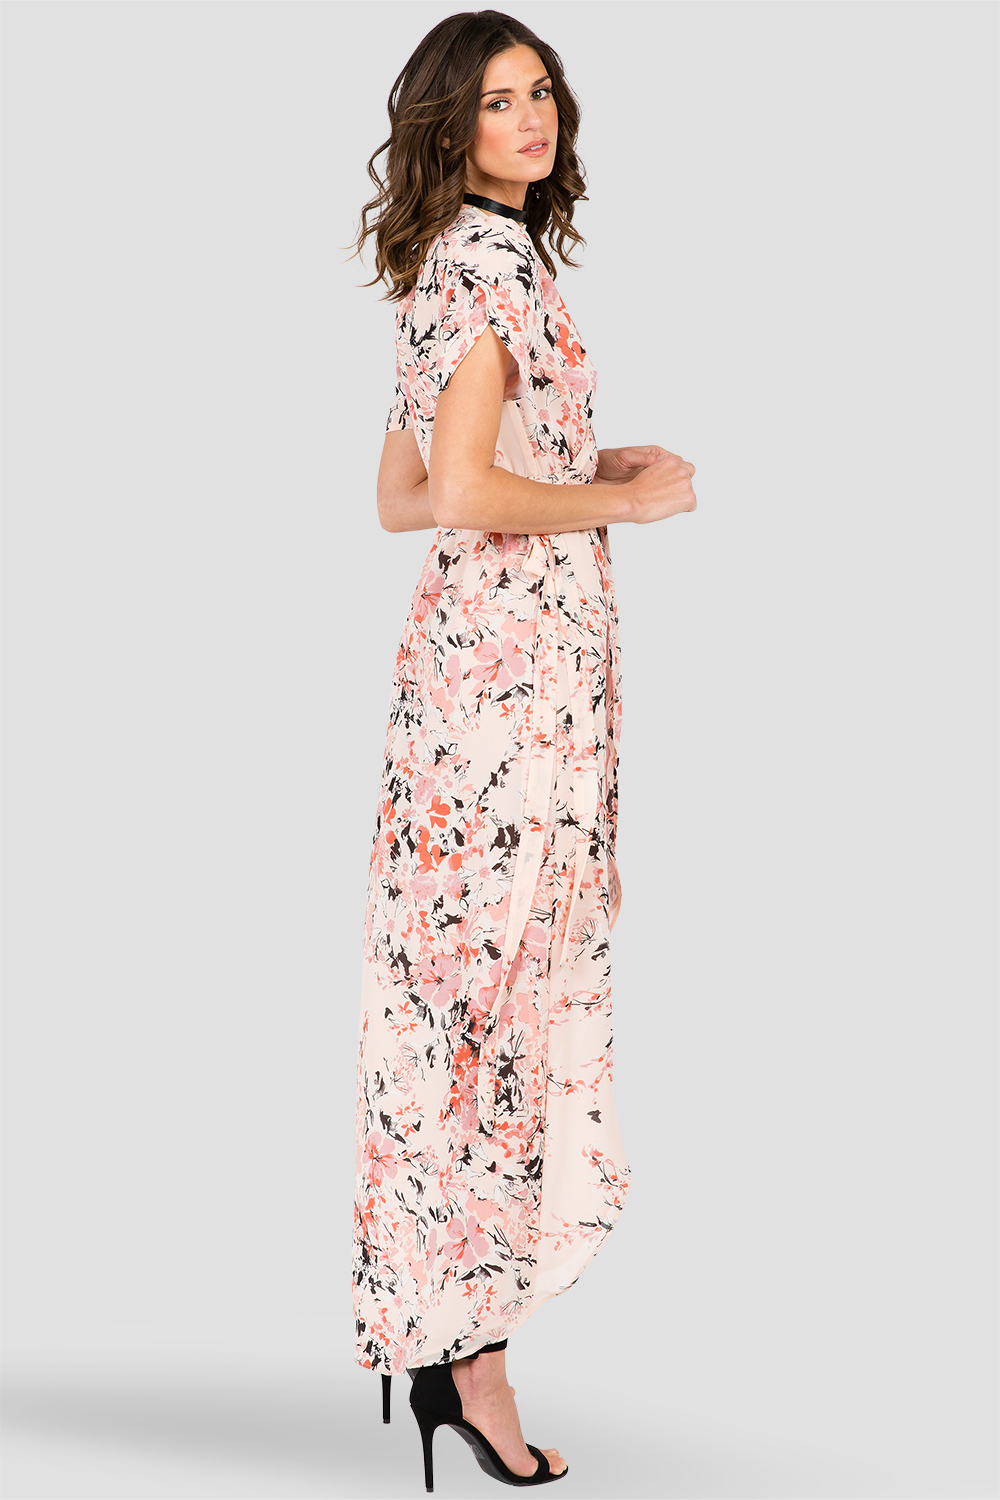 Robin Short Sleeve V-Neck Maxi Dress Peach Pink Floral Print